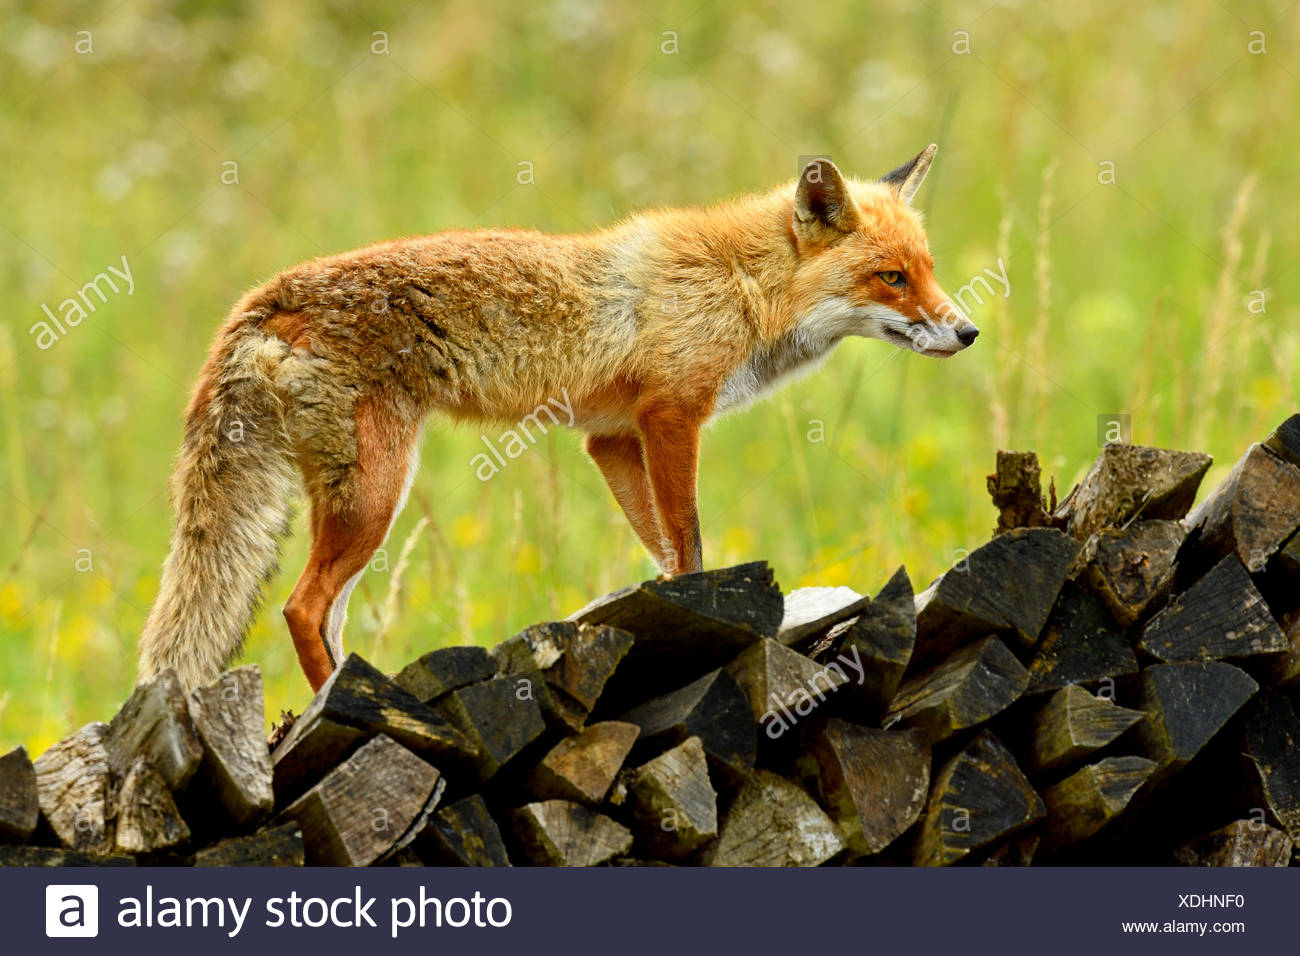 Red fox (Vulpes vulpes) standing on wood pile, captive, Canton of Zurich, Switzerland - Stock Image